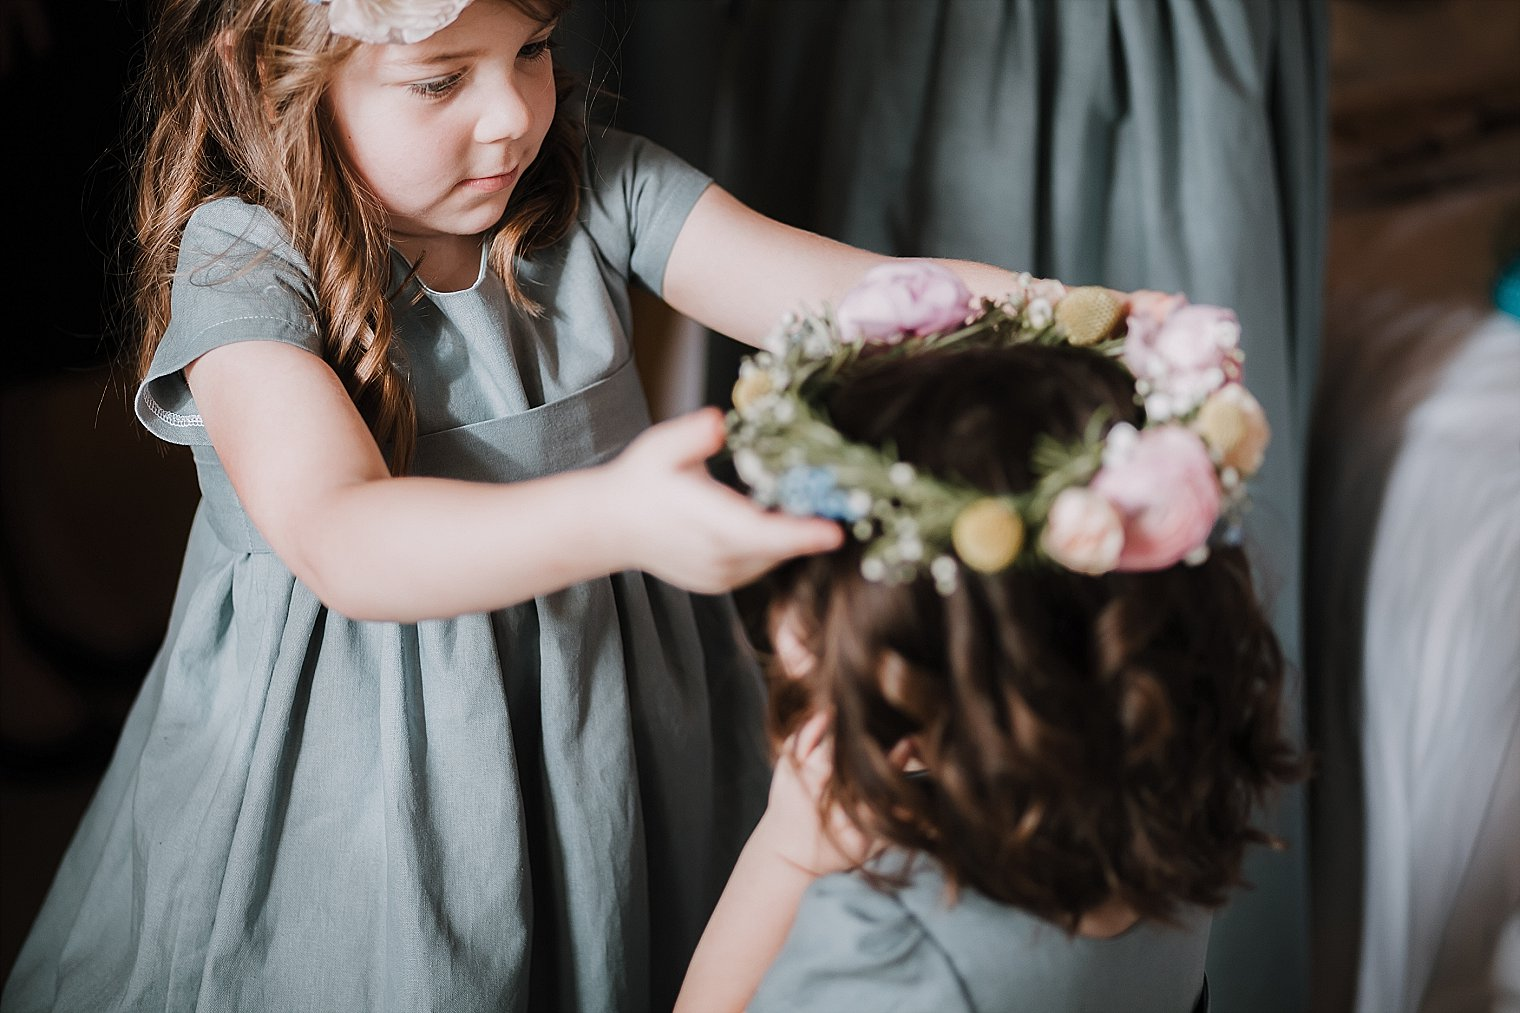 2 flowergirls getting dressed